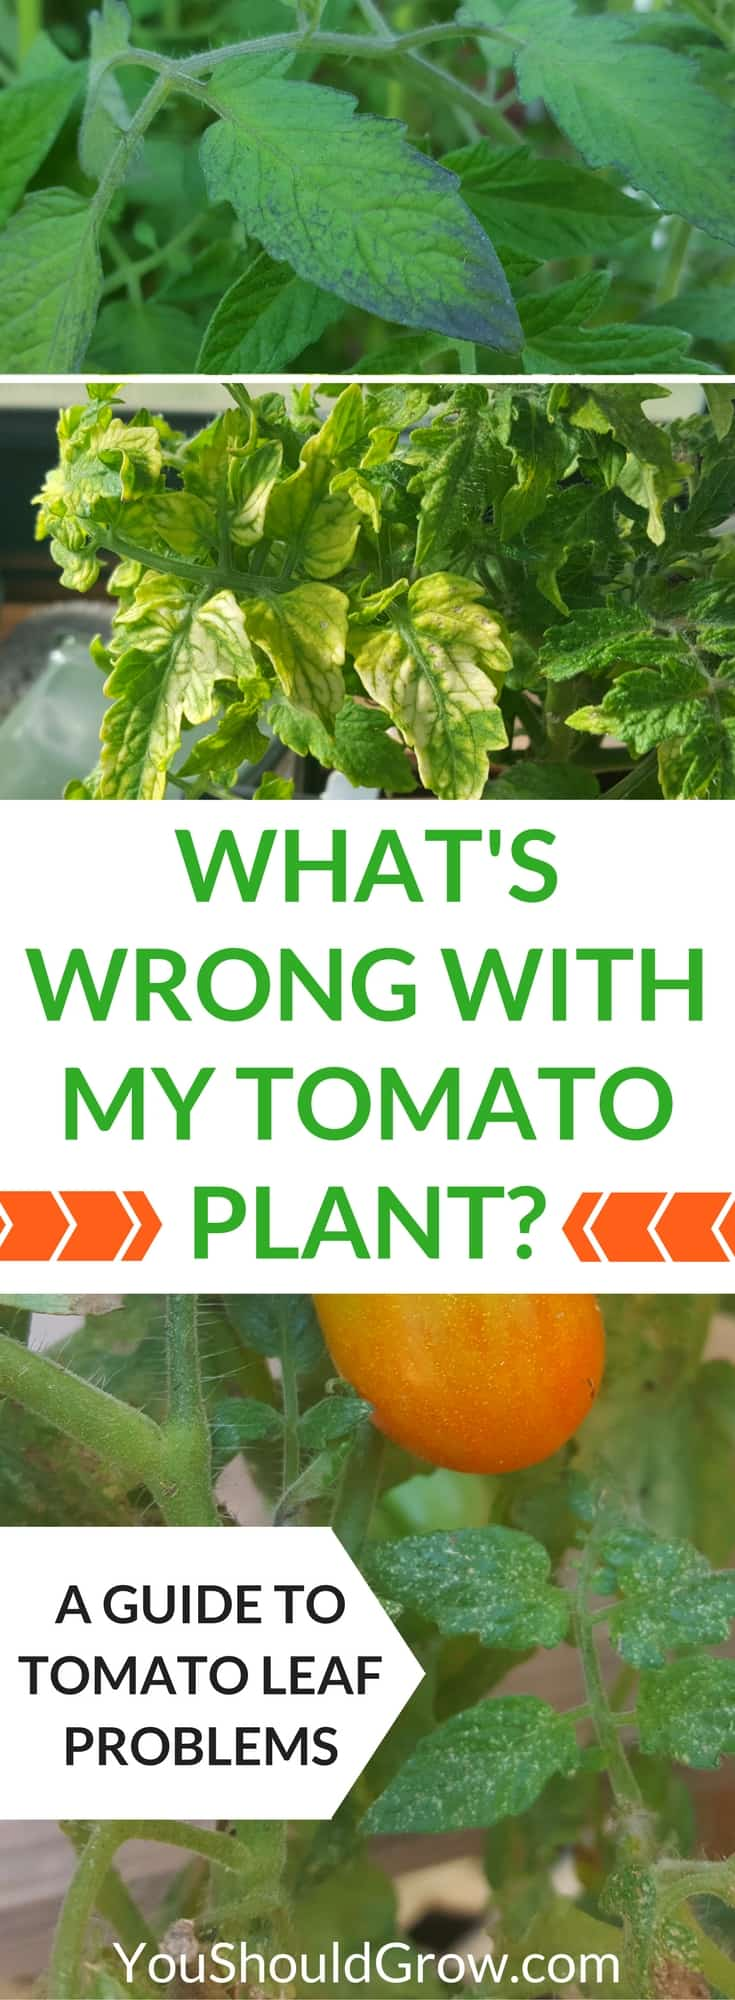 What 39 s wrong with my tomato plant a guide to tomato leaf problems you should grow for What should i plant in my garden